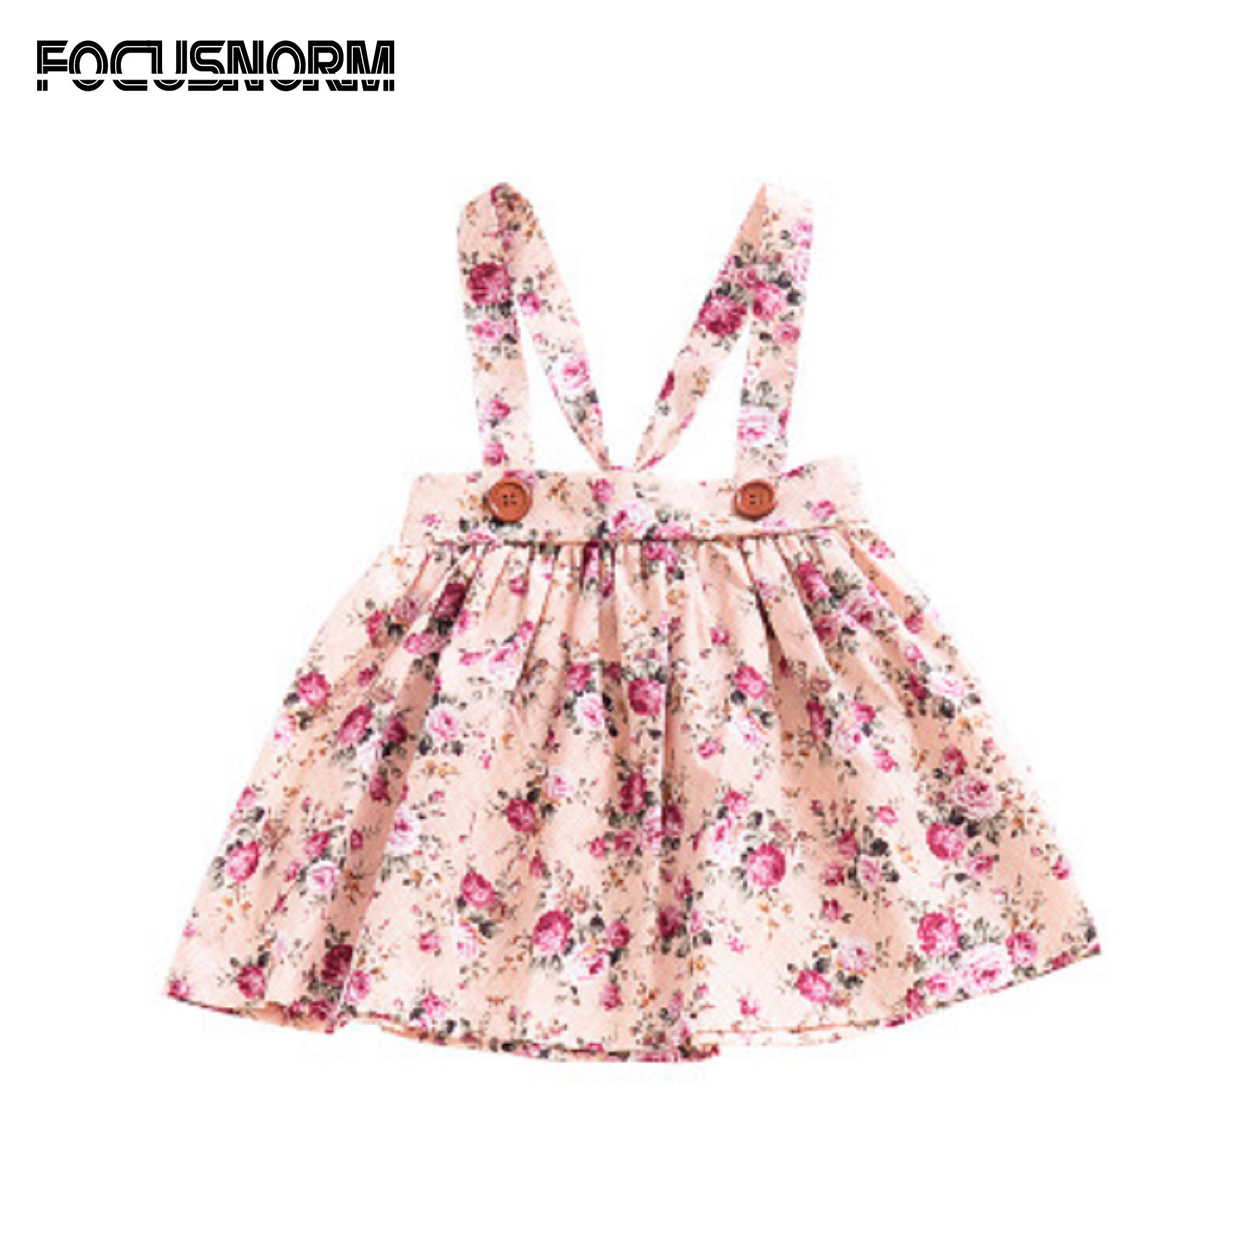 d8e05388c Clothing, Shoes & Accessories Infant Toddler Kids Baby Girl Summer Braces  Strap Skirt Dress Playsuit Clothes